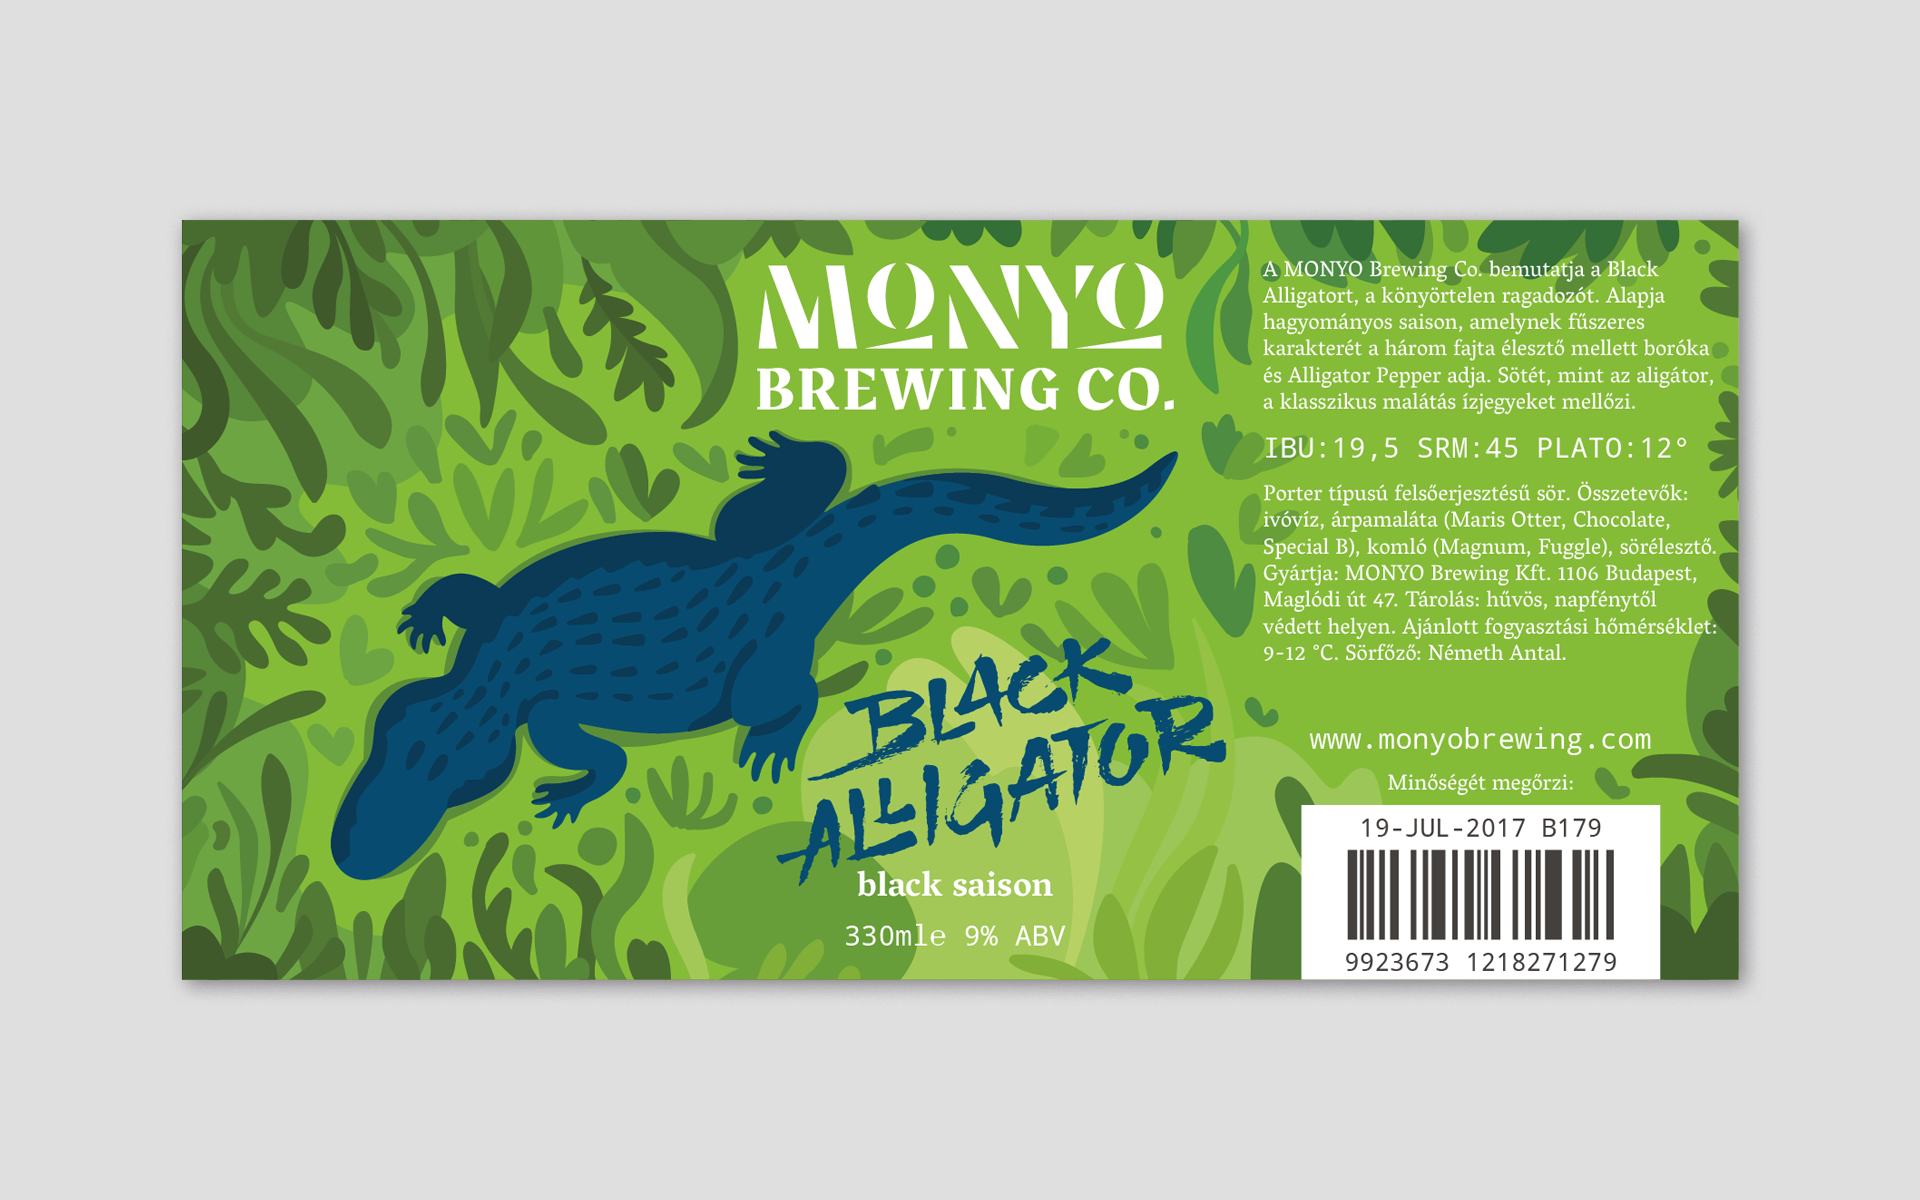 MONYO craft beer packaging \ Black Alligator label design